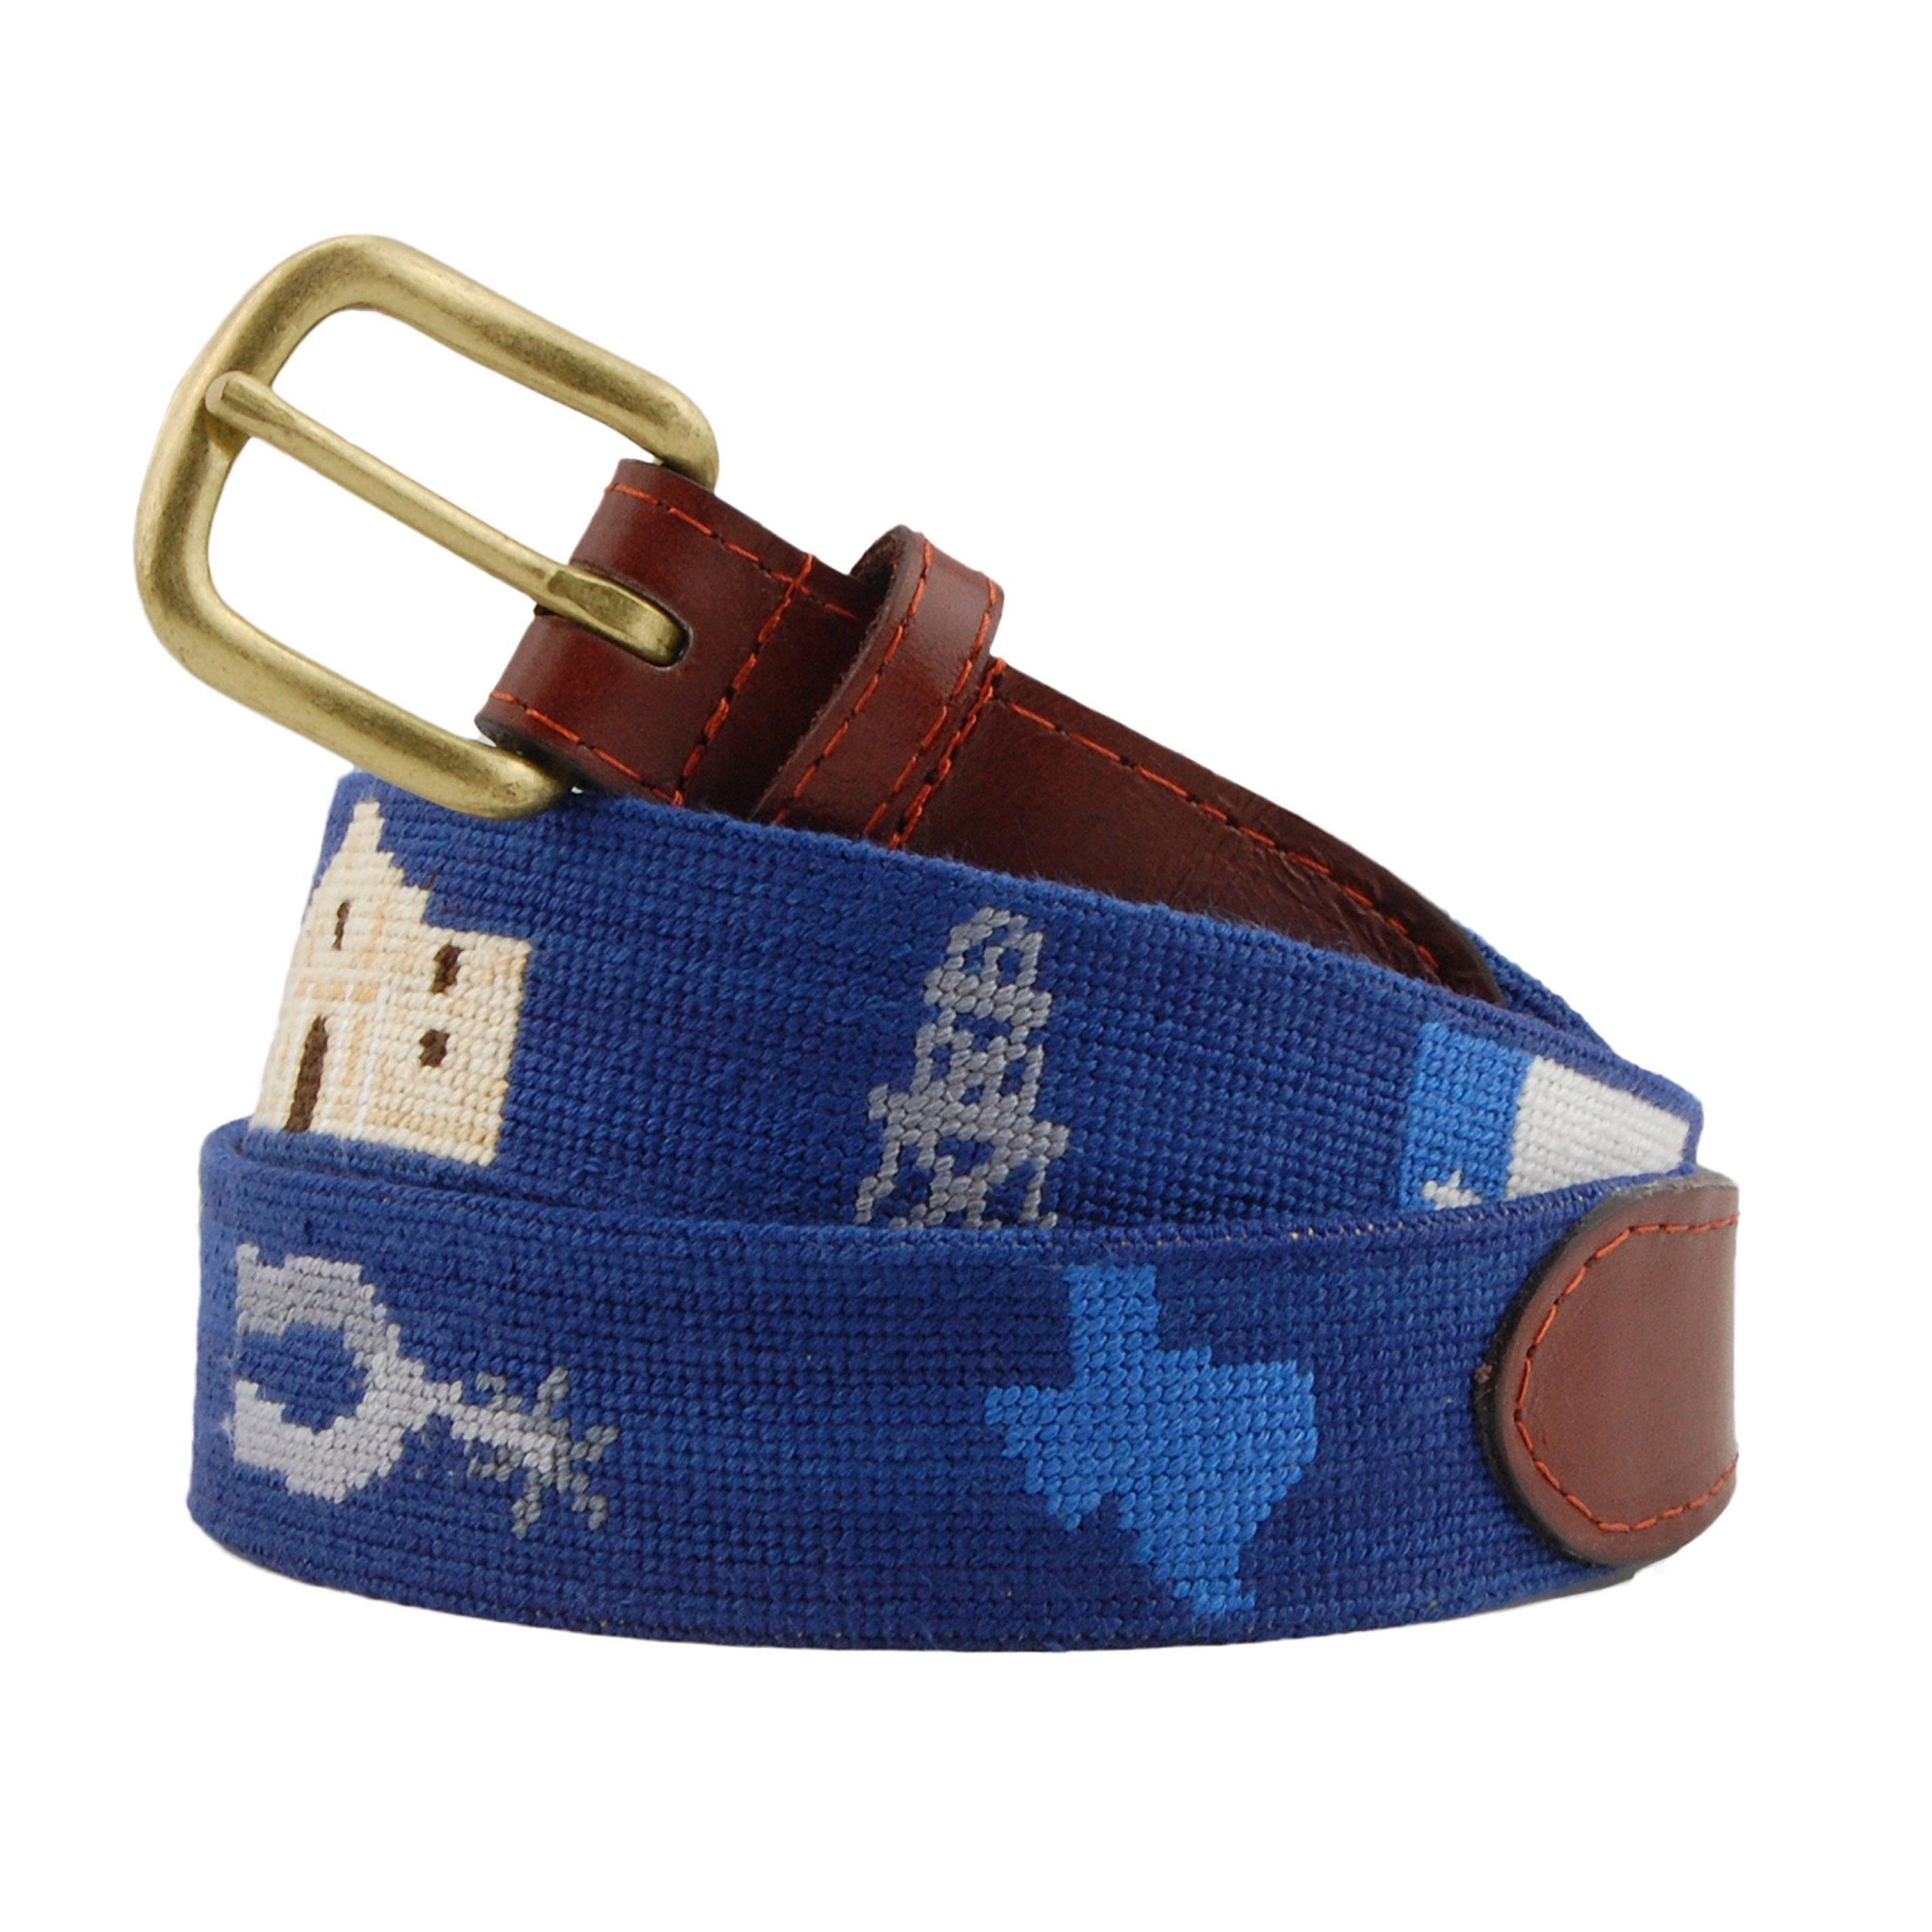 Smathers & Branson Men's Texas Life Needlepoint Belt 36 Classic Navy by Smathers & Branson